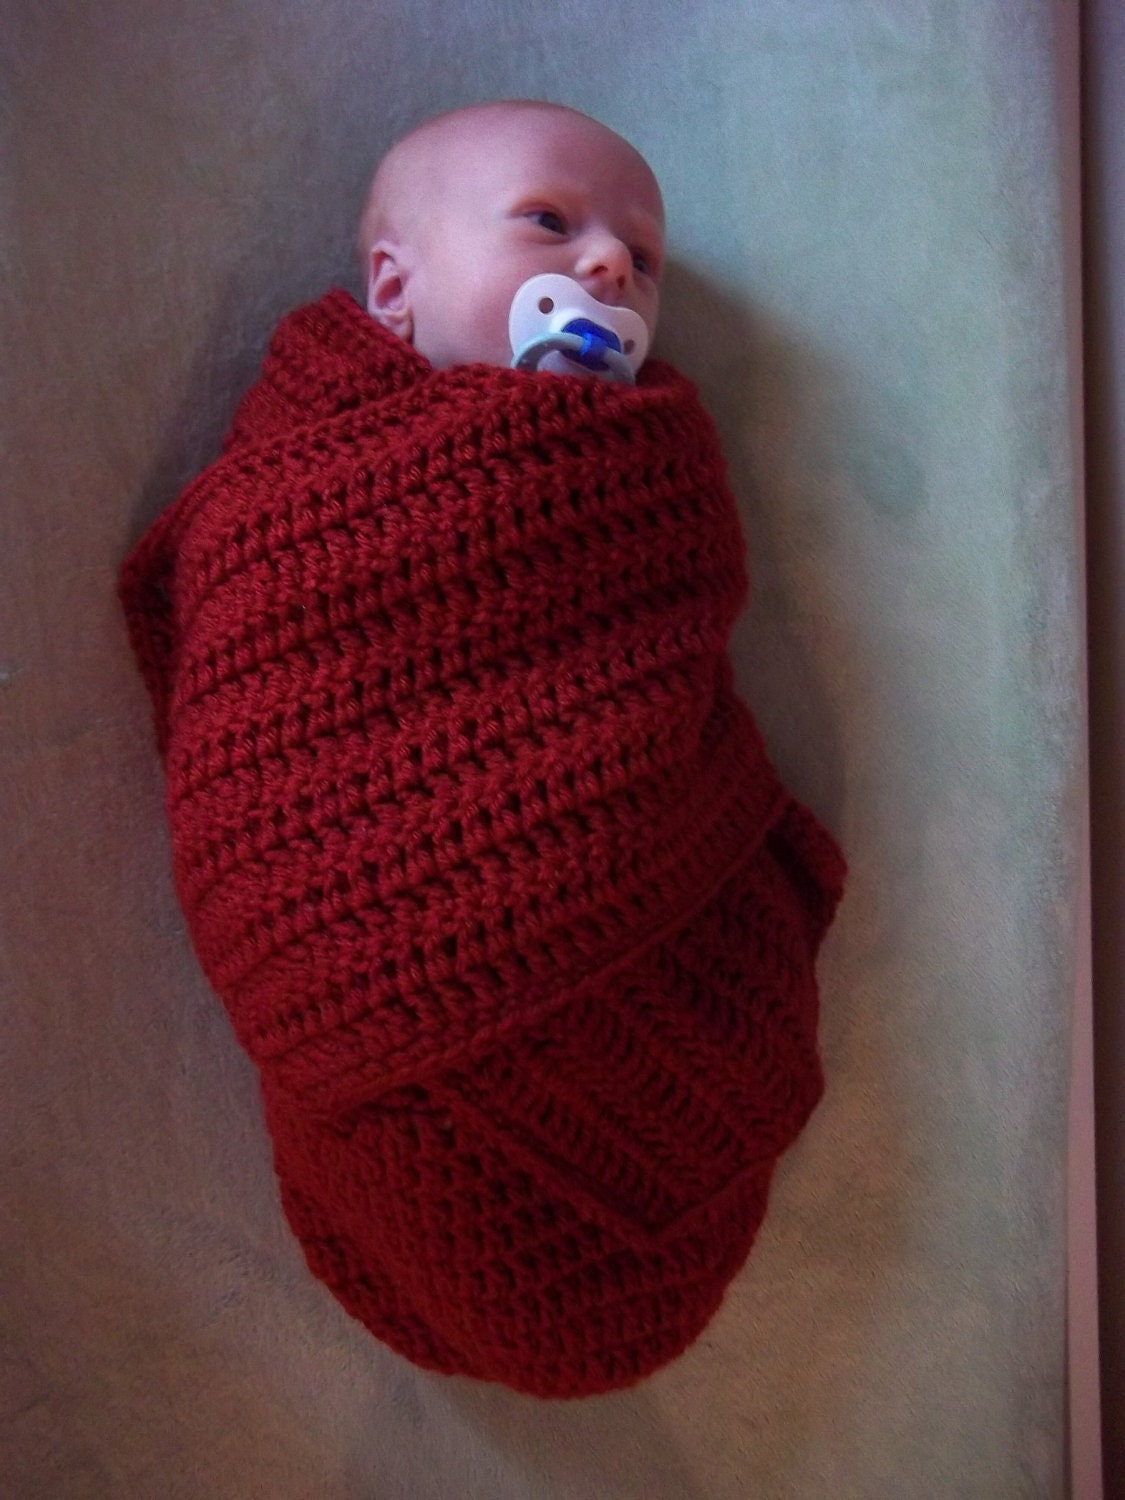 Crochet Pattern For Shell Baby Blanket : Swaddler Crochet Pattern Swaddle Blanket by browneyedgirl1489